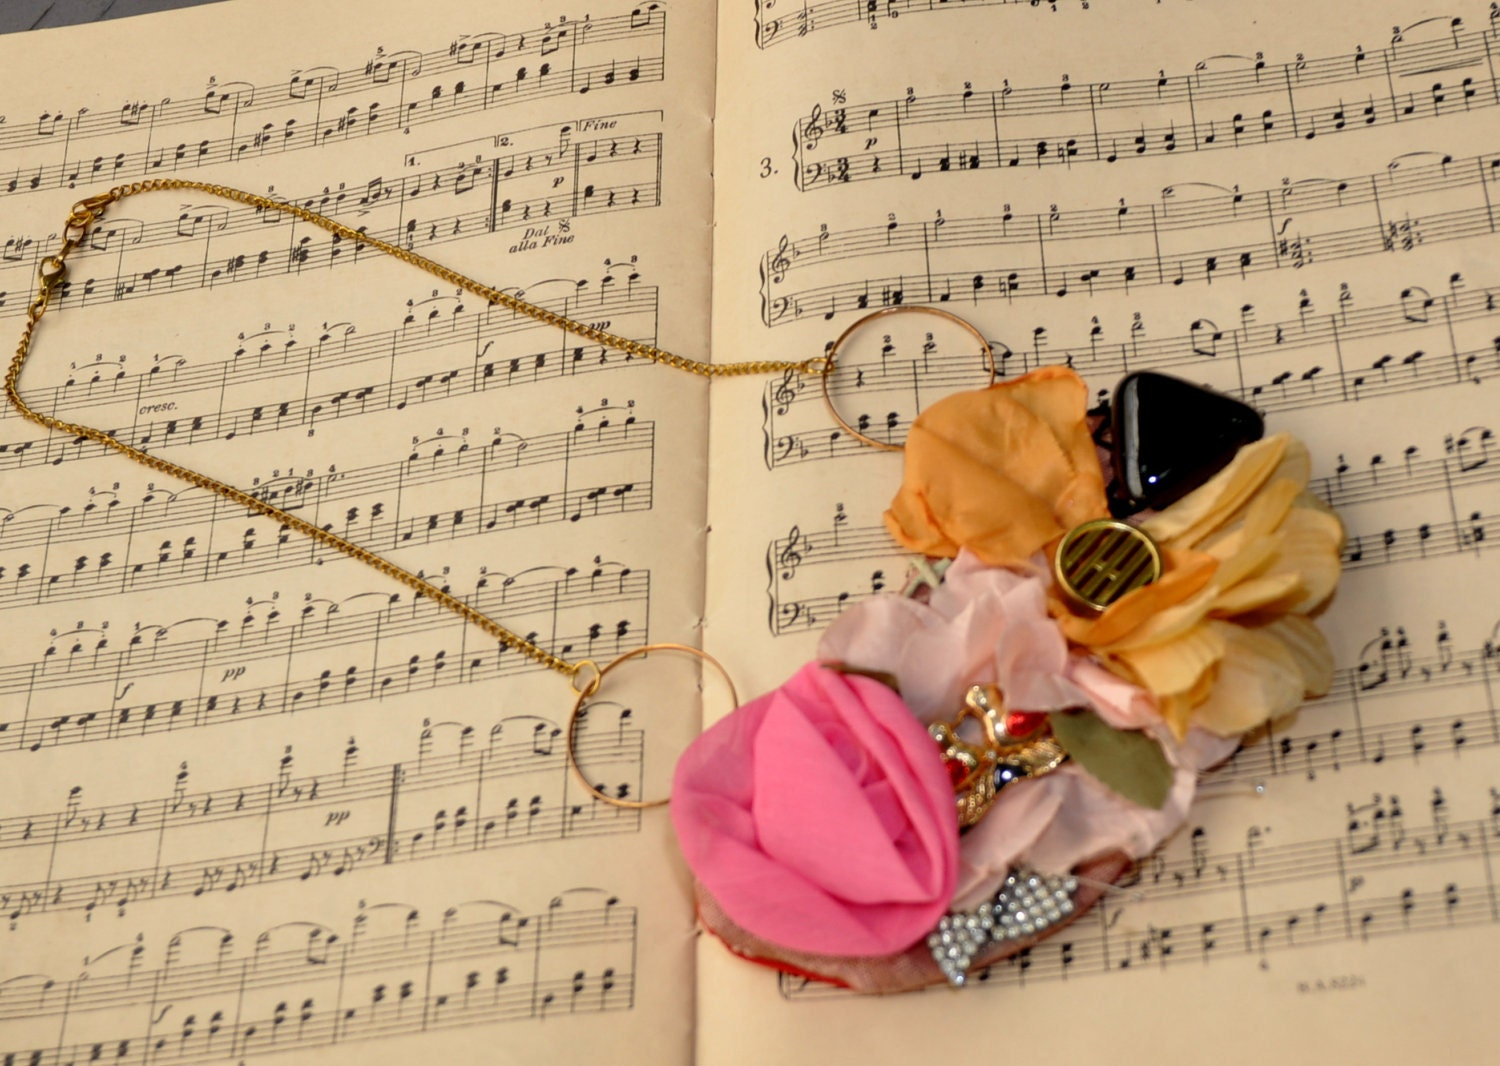 Colorful Necklace of handmade Flowers - LaMaurer